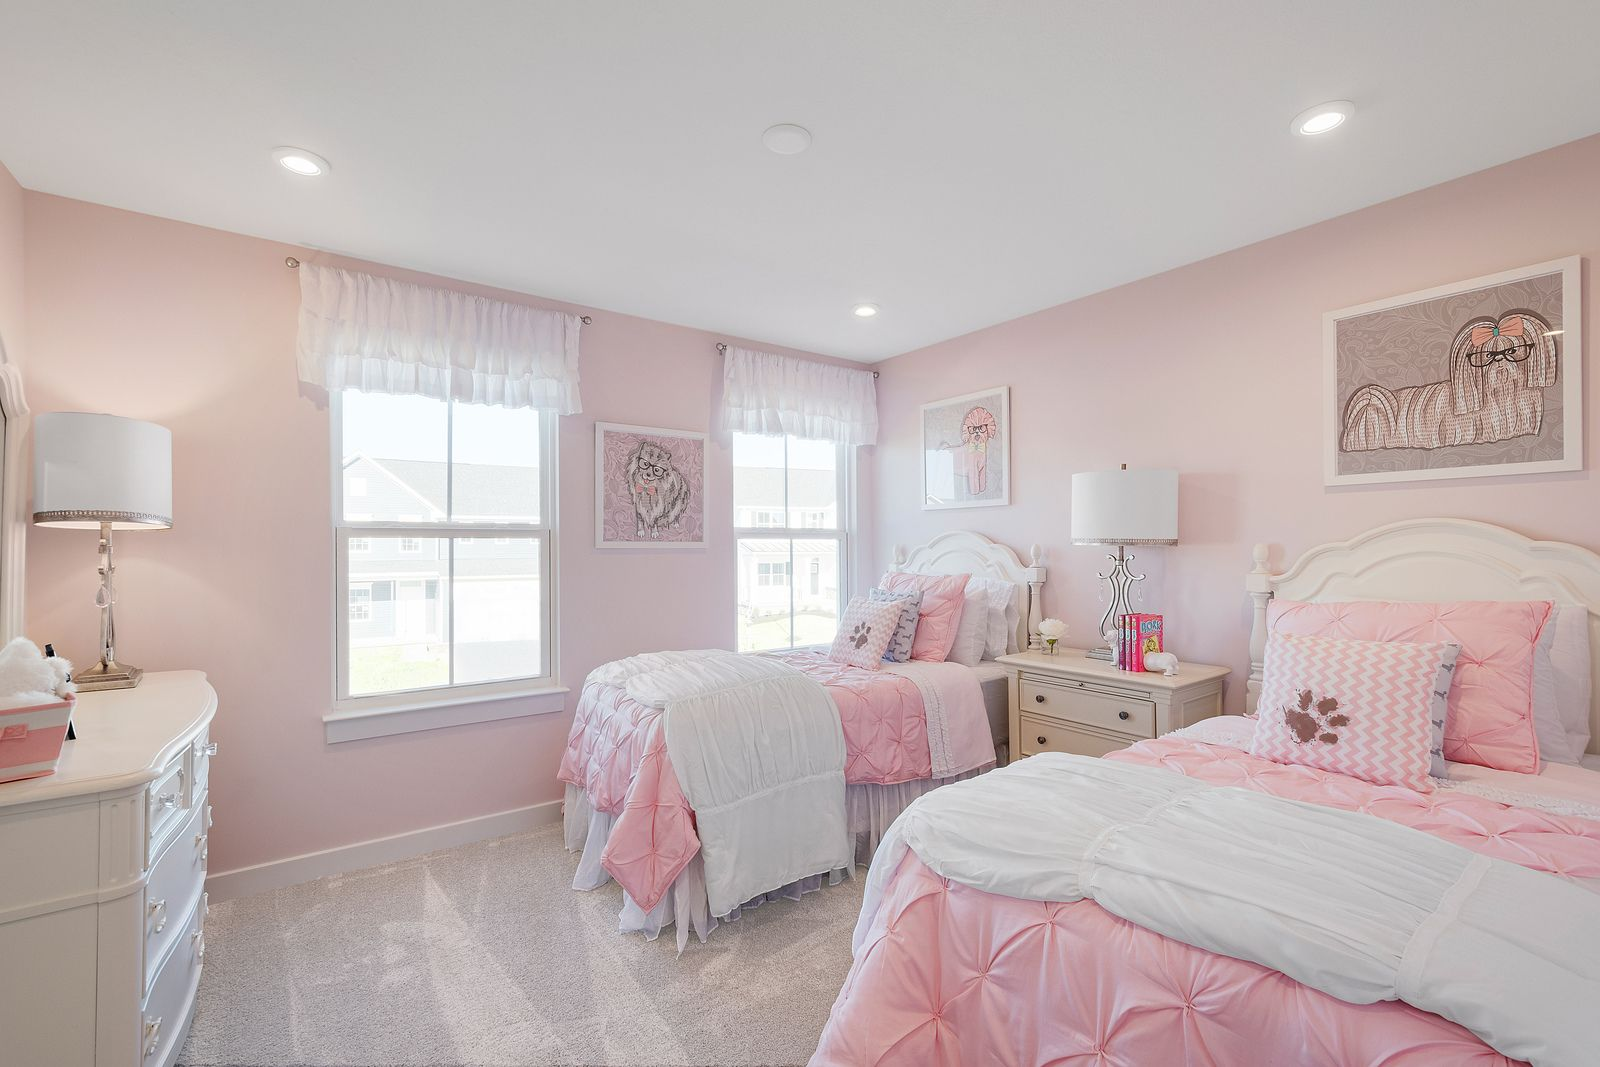 Bedroom featured in the Columbia By Ryan Homes in Outer Banks, NC